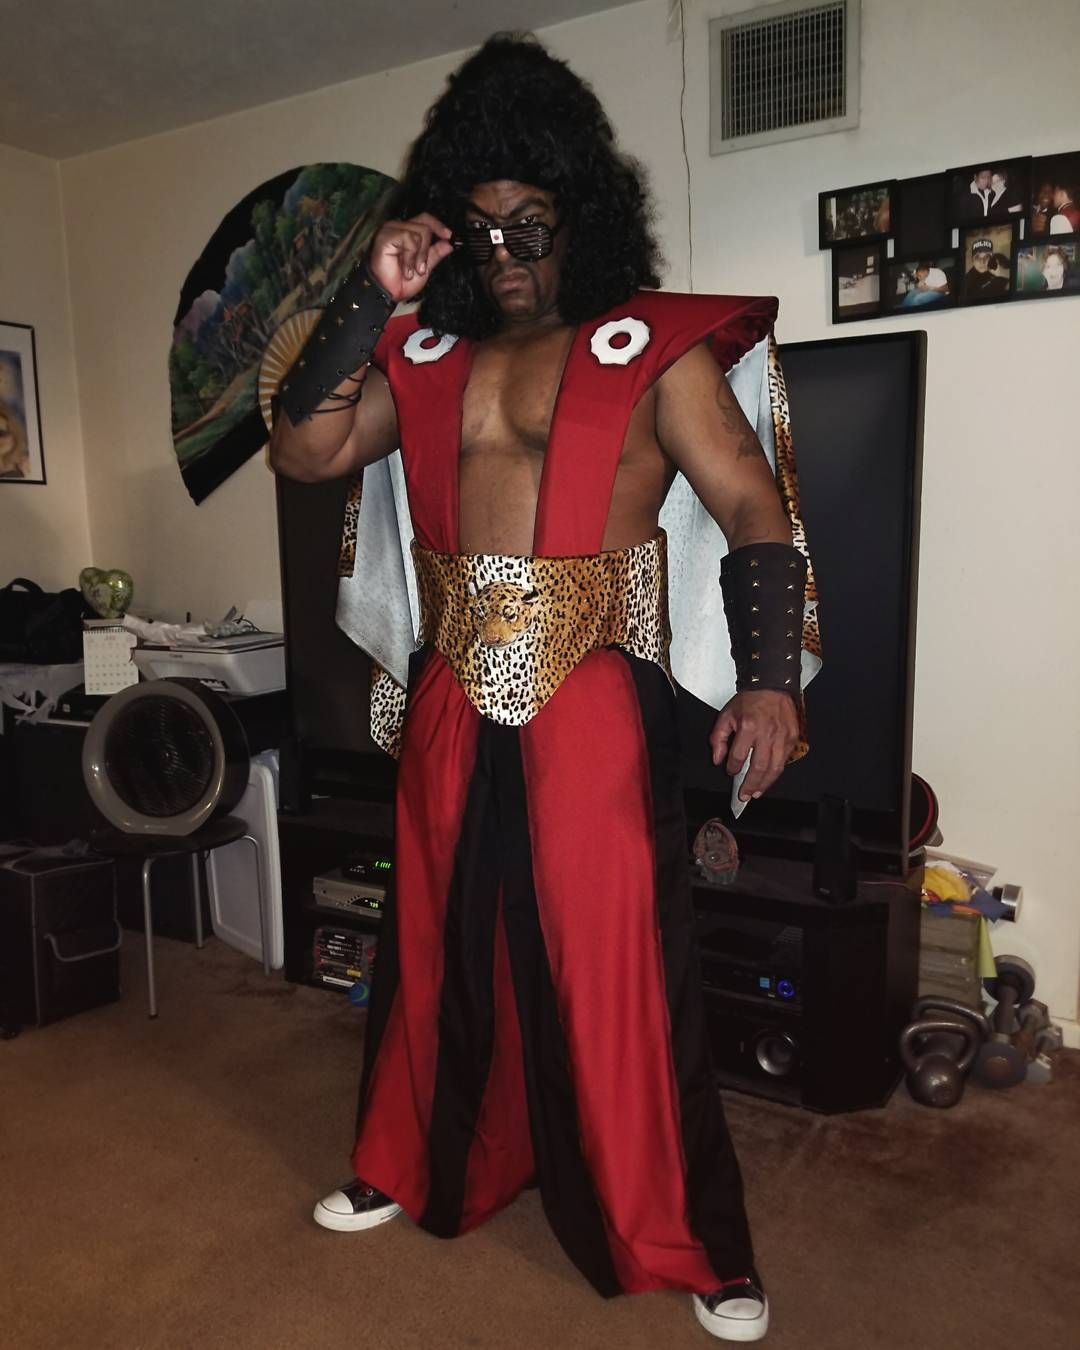 583 Likes 59 Comments Michael Knightmage Wilson Knightmage1 On Instagram Sho 39 Nuff The Last Dragon Day Cosplay Diy Clothing Television Characters